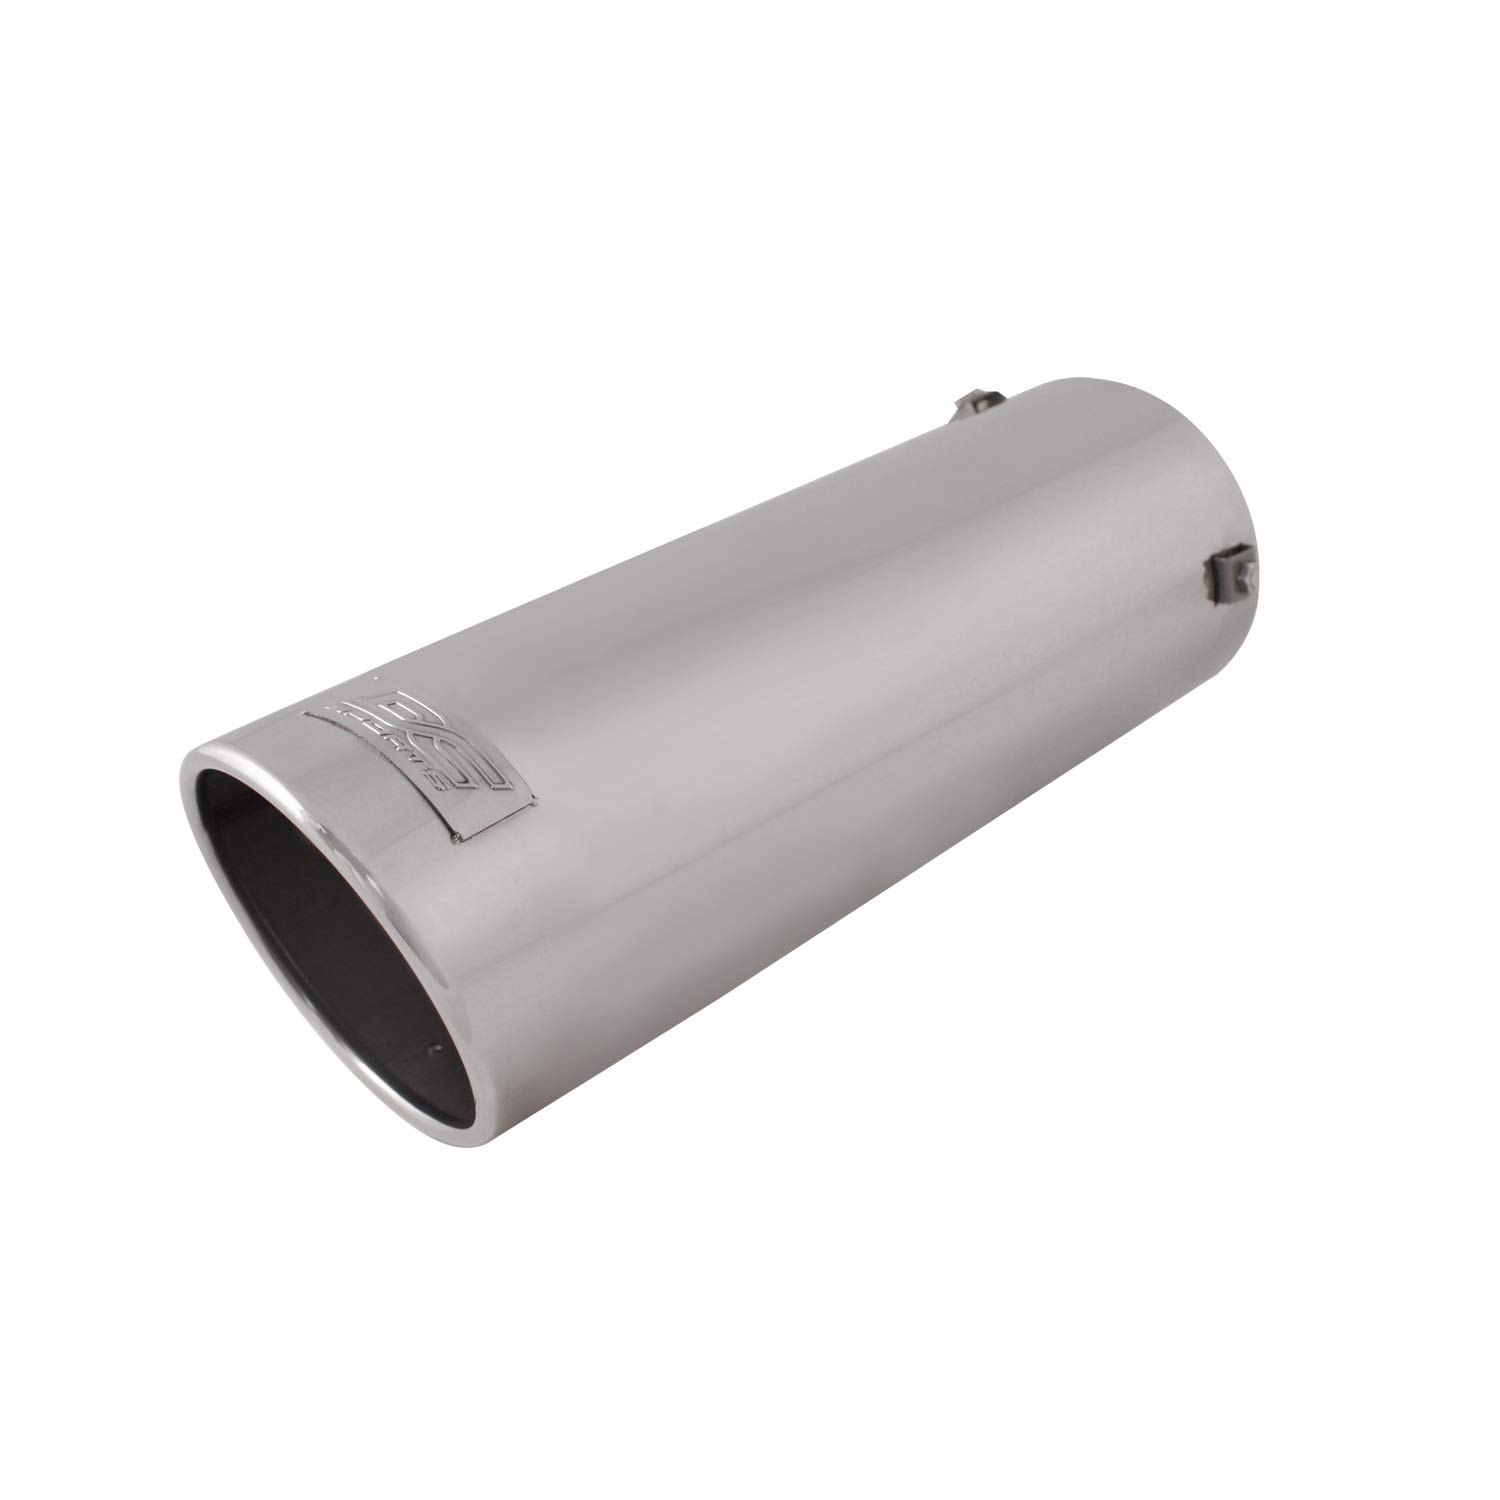 DC Sports EX-1016 Stainless Steel Round Slant Cut High Performance Exhaust Tip - Dimensions: 4 in (intake) x 4.5 in (outlet) x 13.25 in (length)